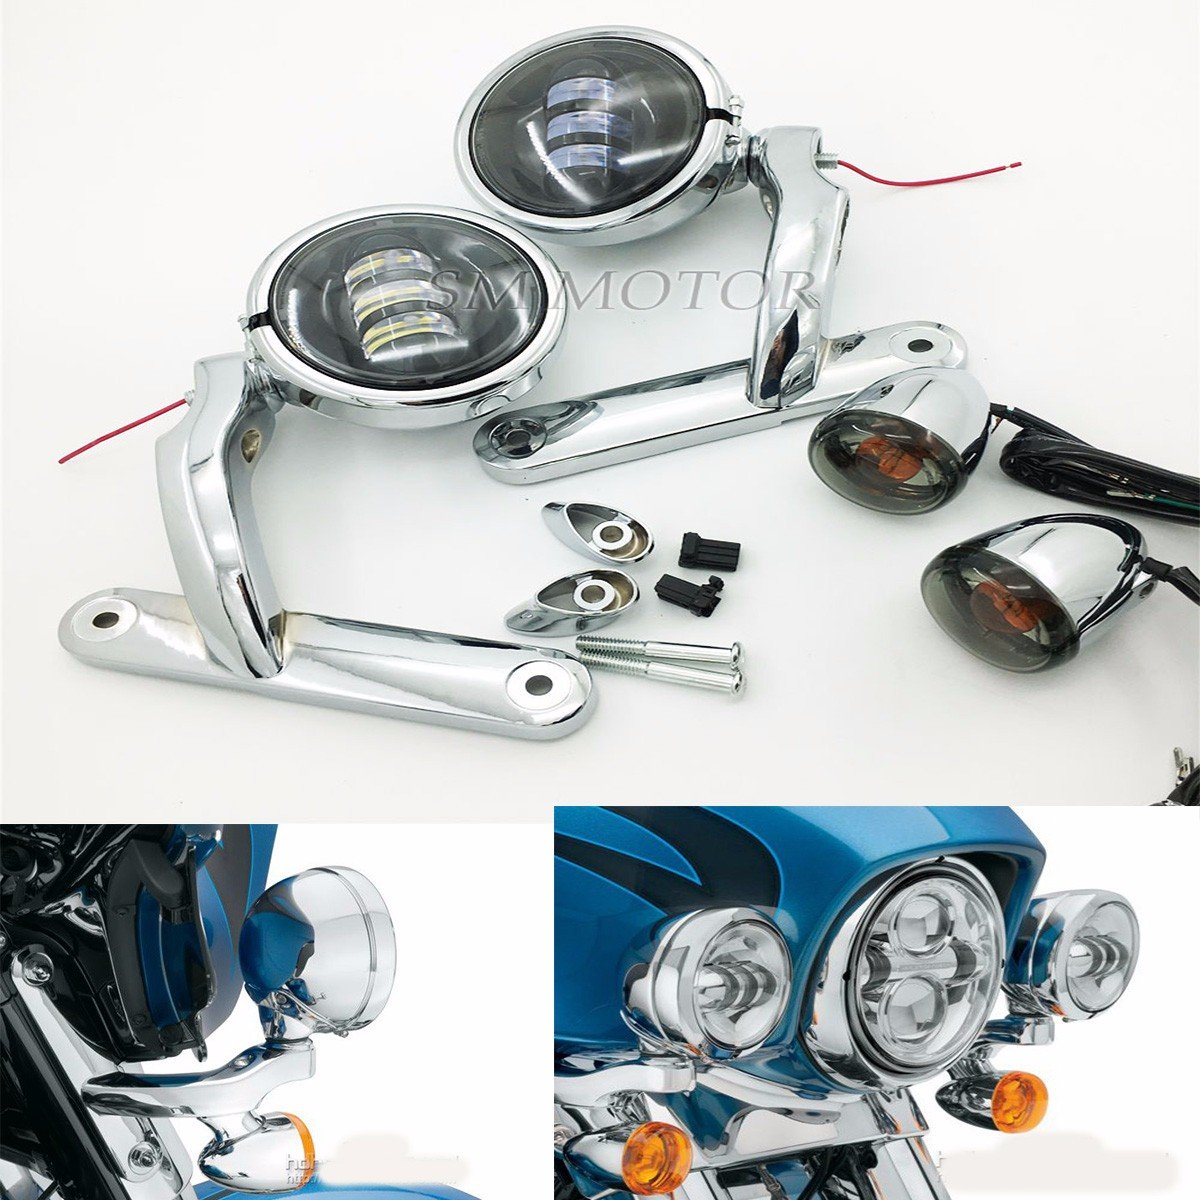 Auxiliary Lighting Brackets with fog and turn signal for Harley Street Glide Chrome B077D8S3JQ